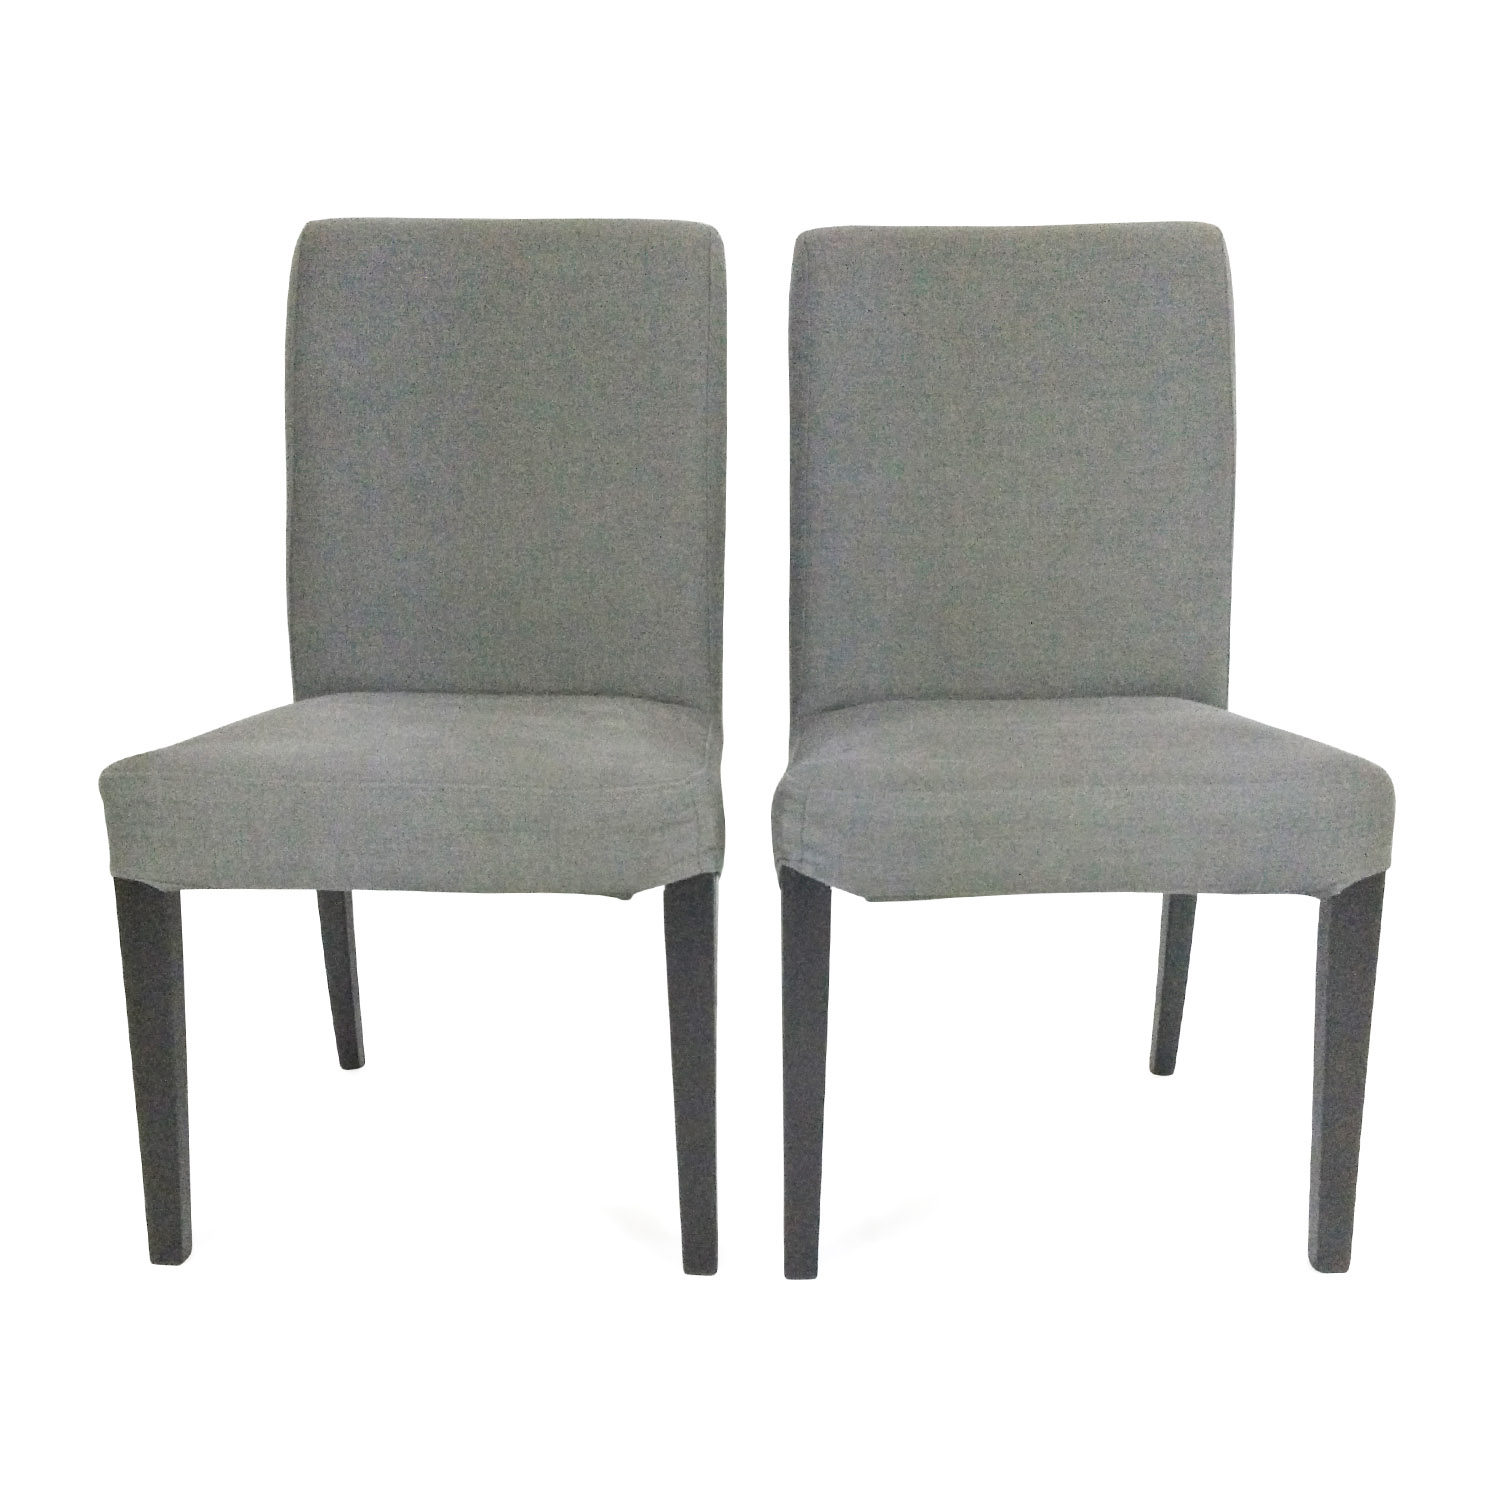 2 Charcoal Grey Chairs Gray